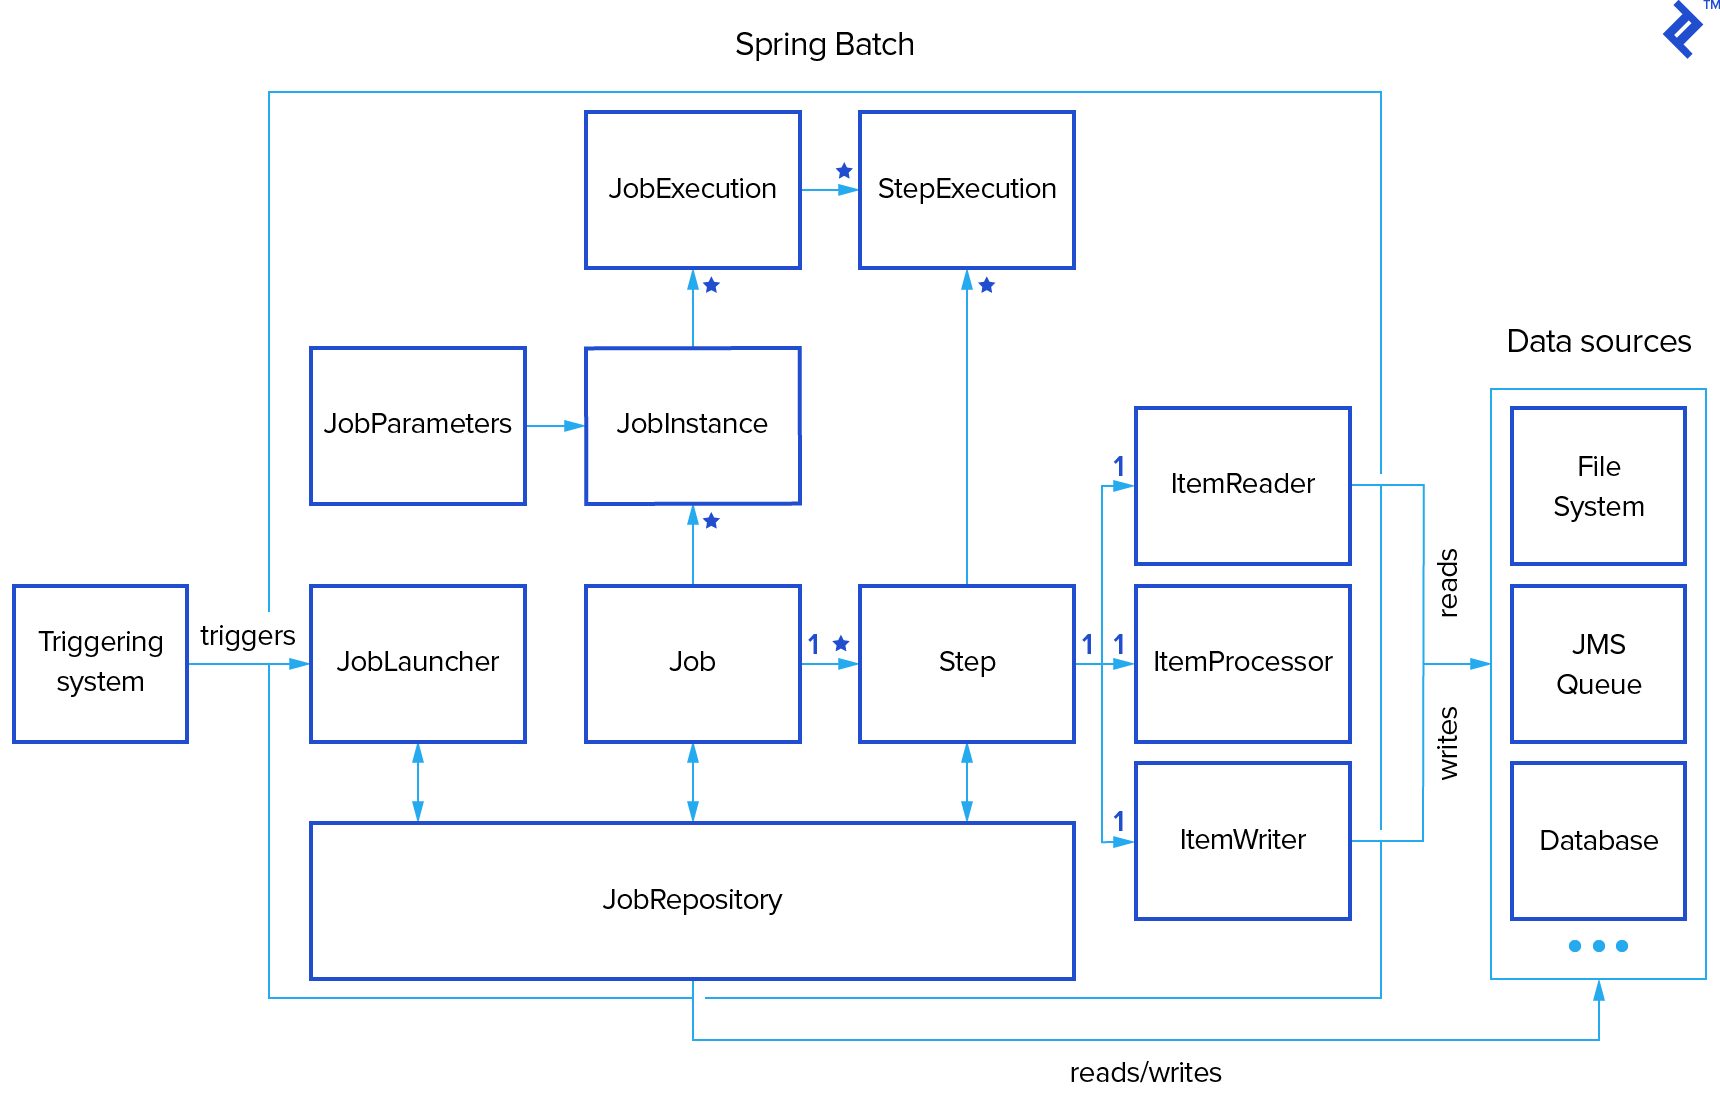 spring batch resume points